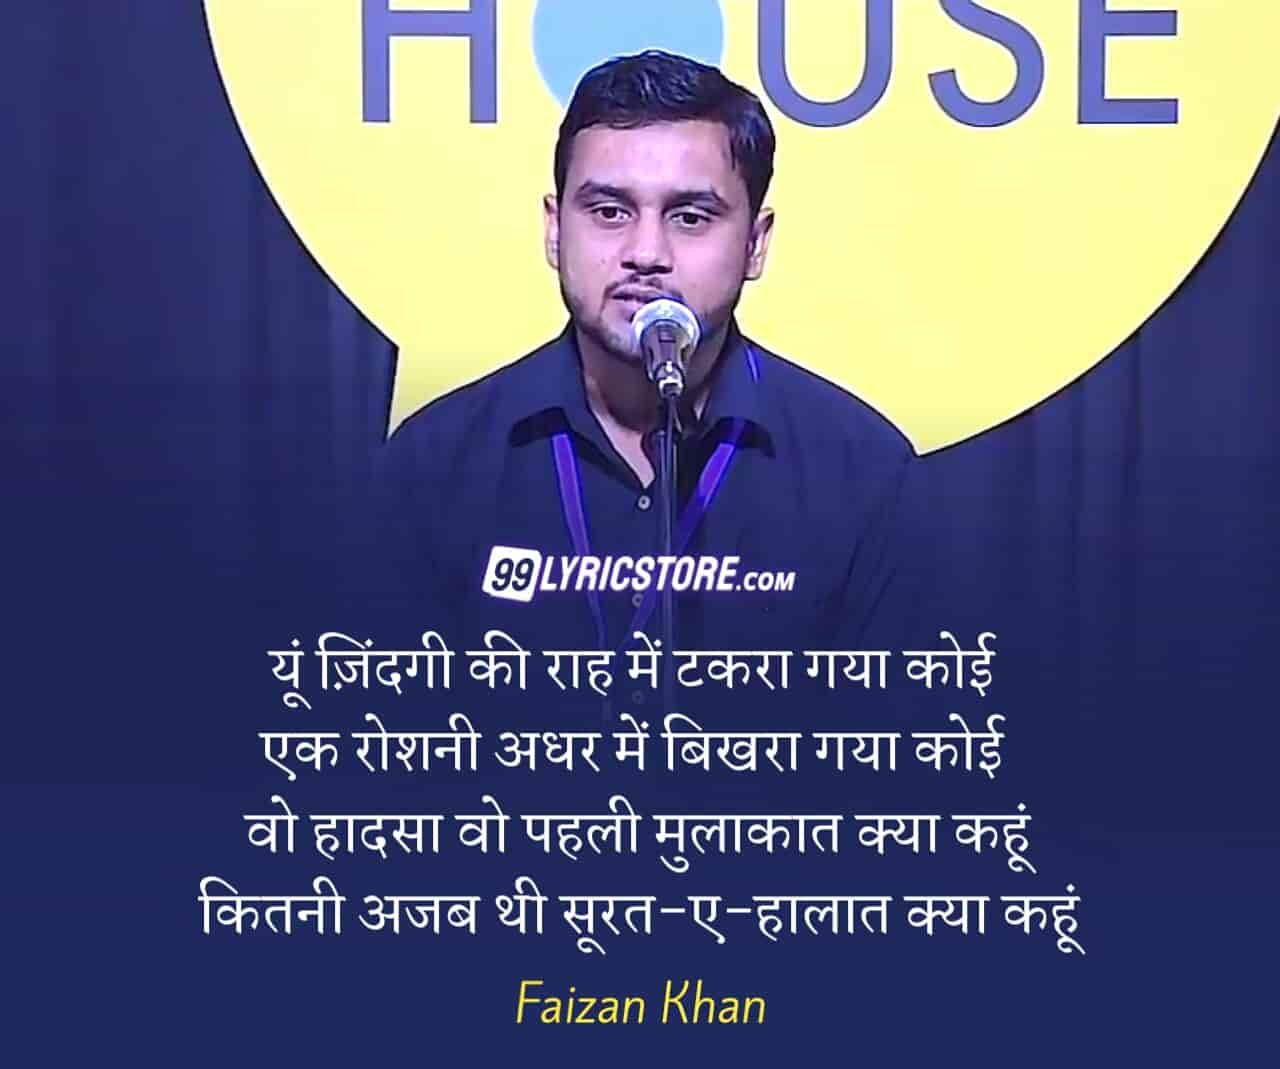 This beautiful poetry 'Yun Hi Takra Gaya Koi' has written and performed by Faizan Khan on The Social House's Plateform.